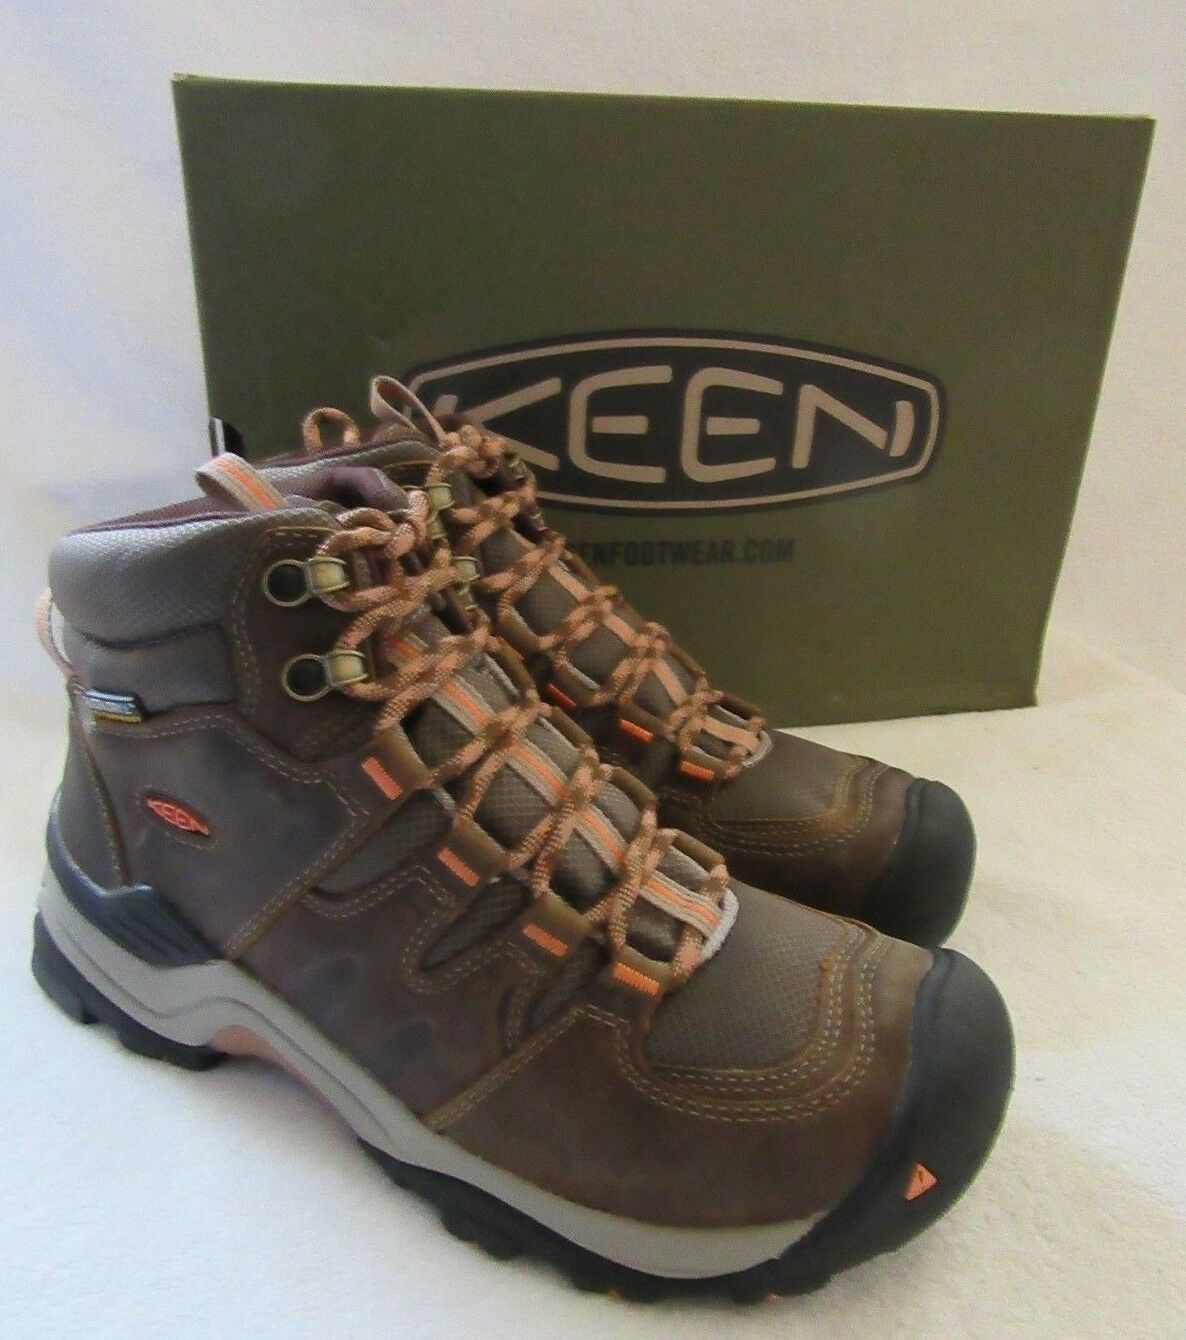 KEEN Gypsum II Mid Waterproof Leather Hiking Boots shoes Size US 7.5 M EU 38 NWB